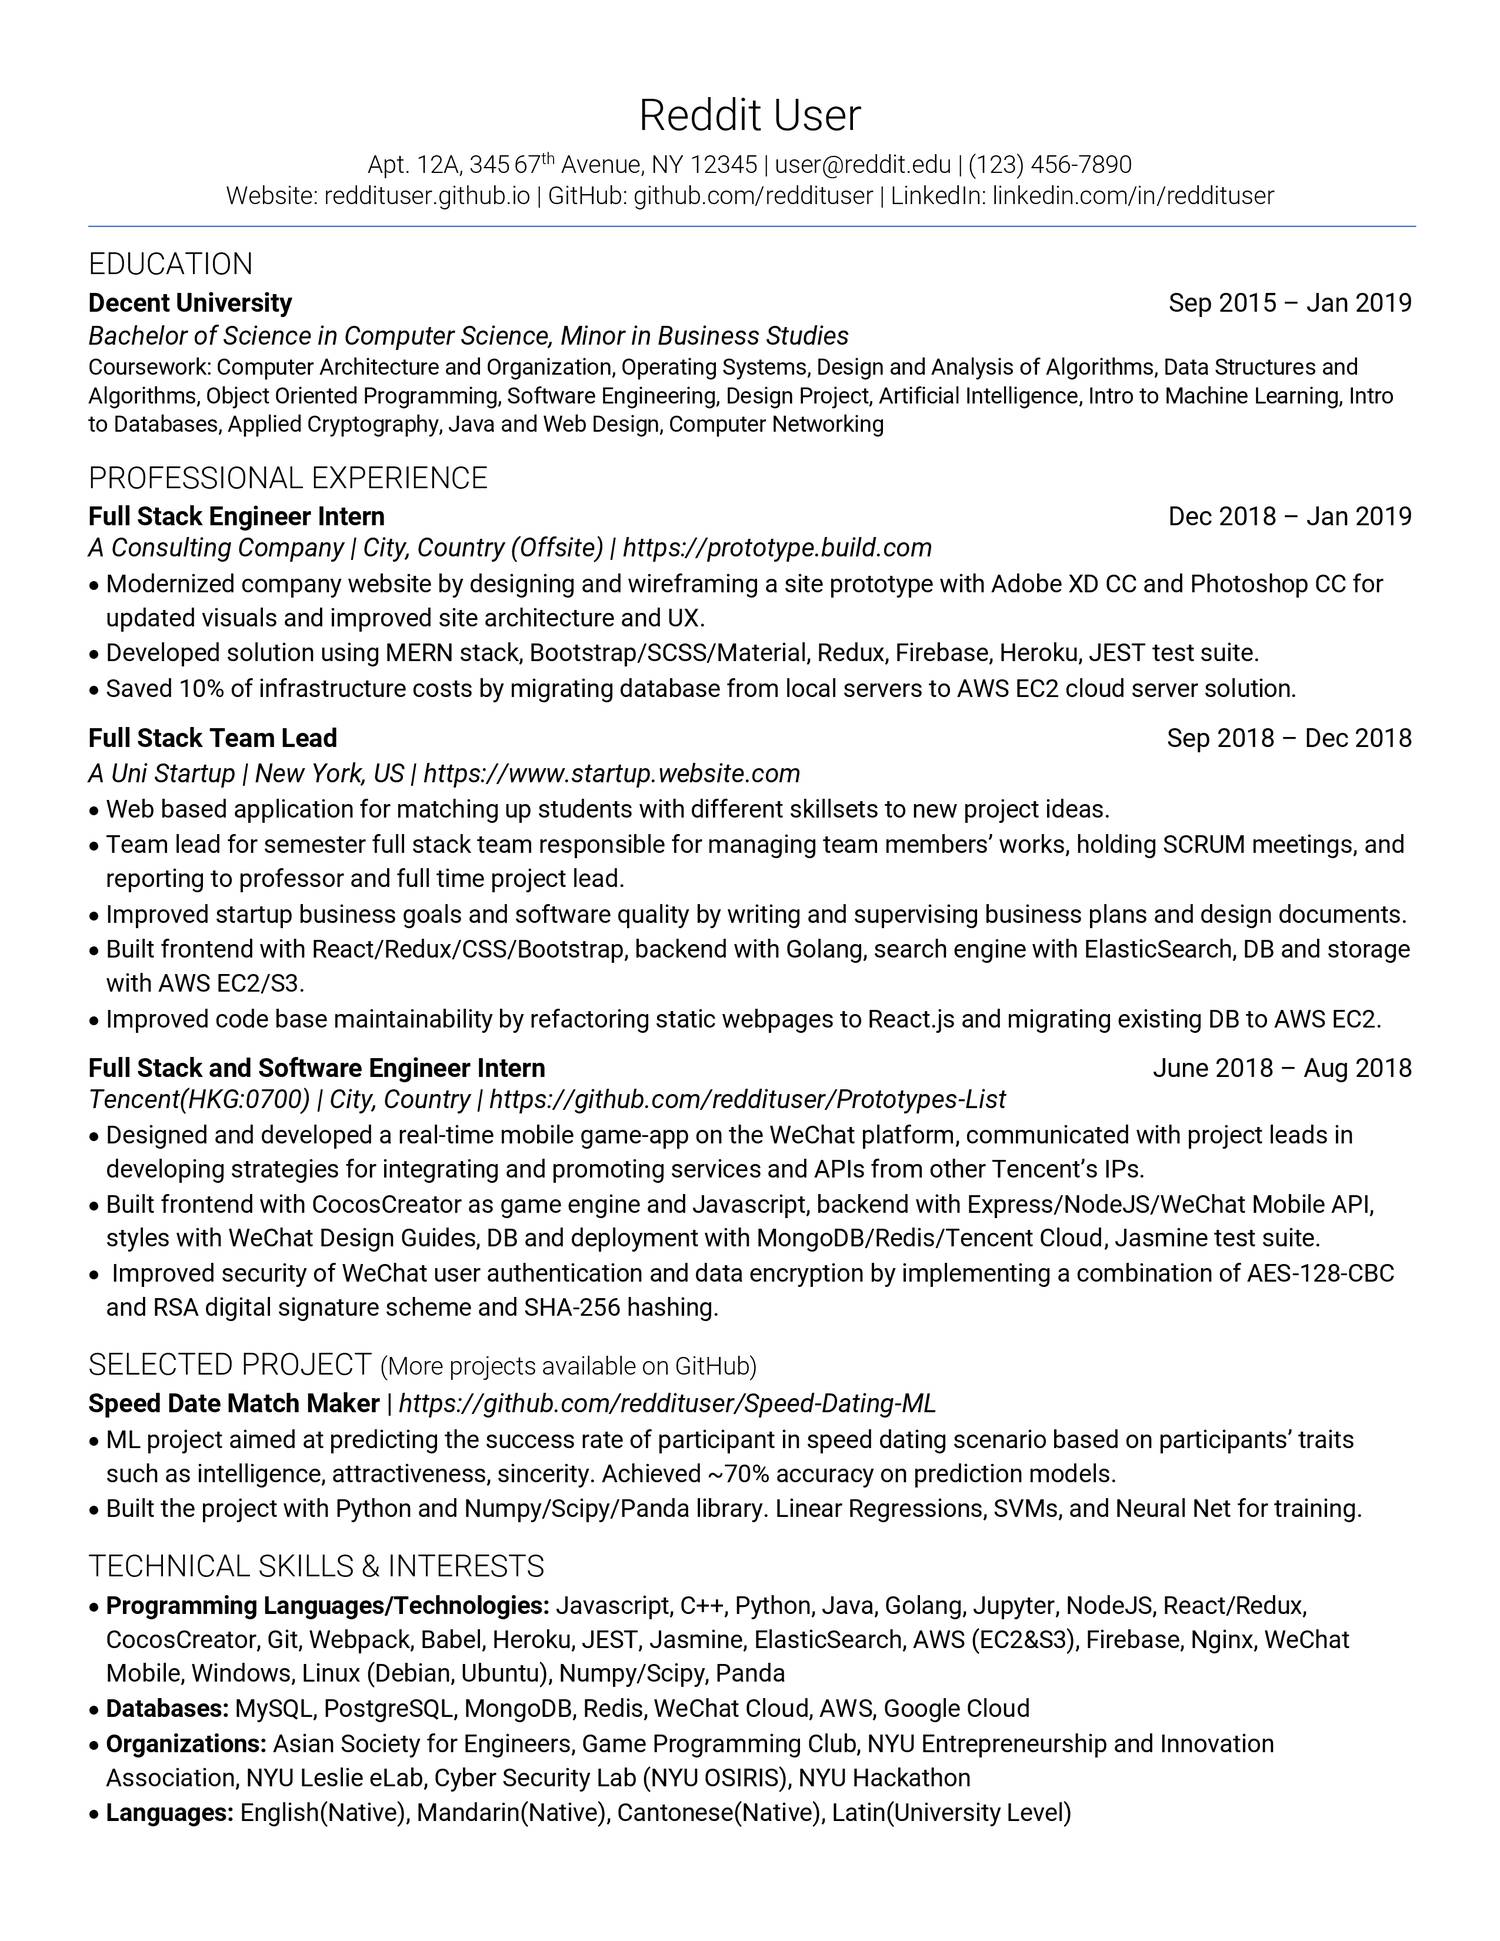 Reddit User Resume Pdf Docdroid